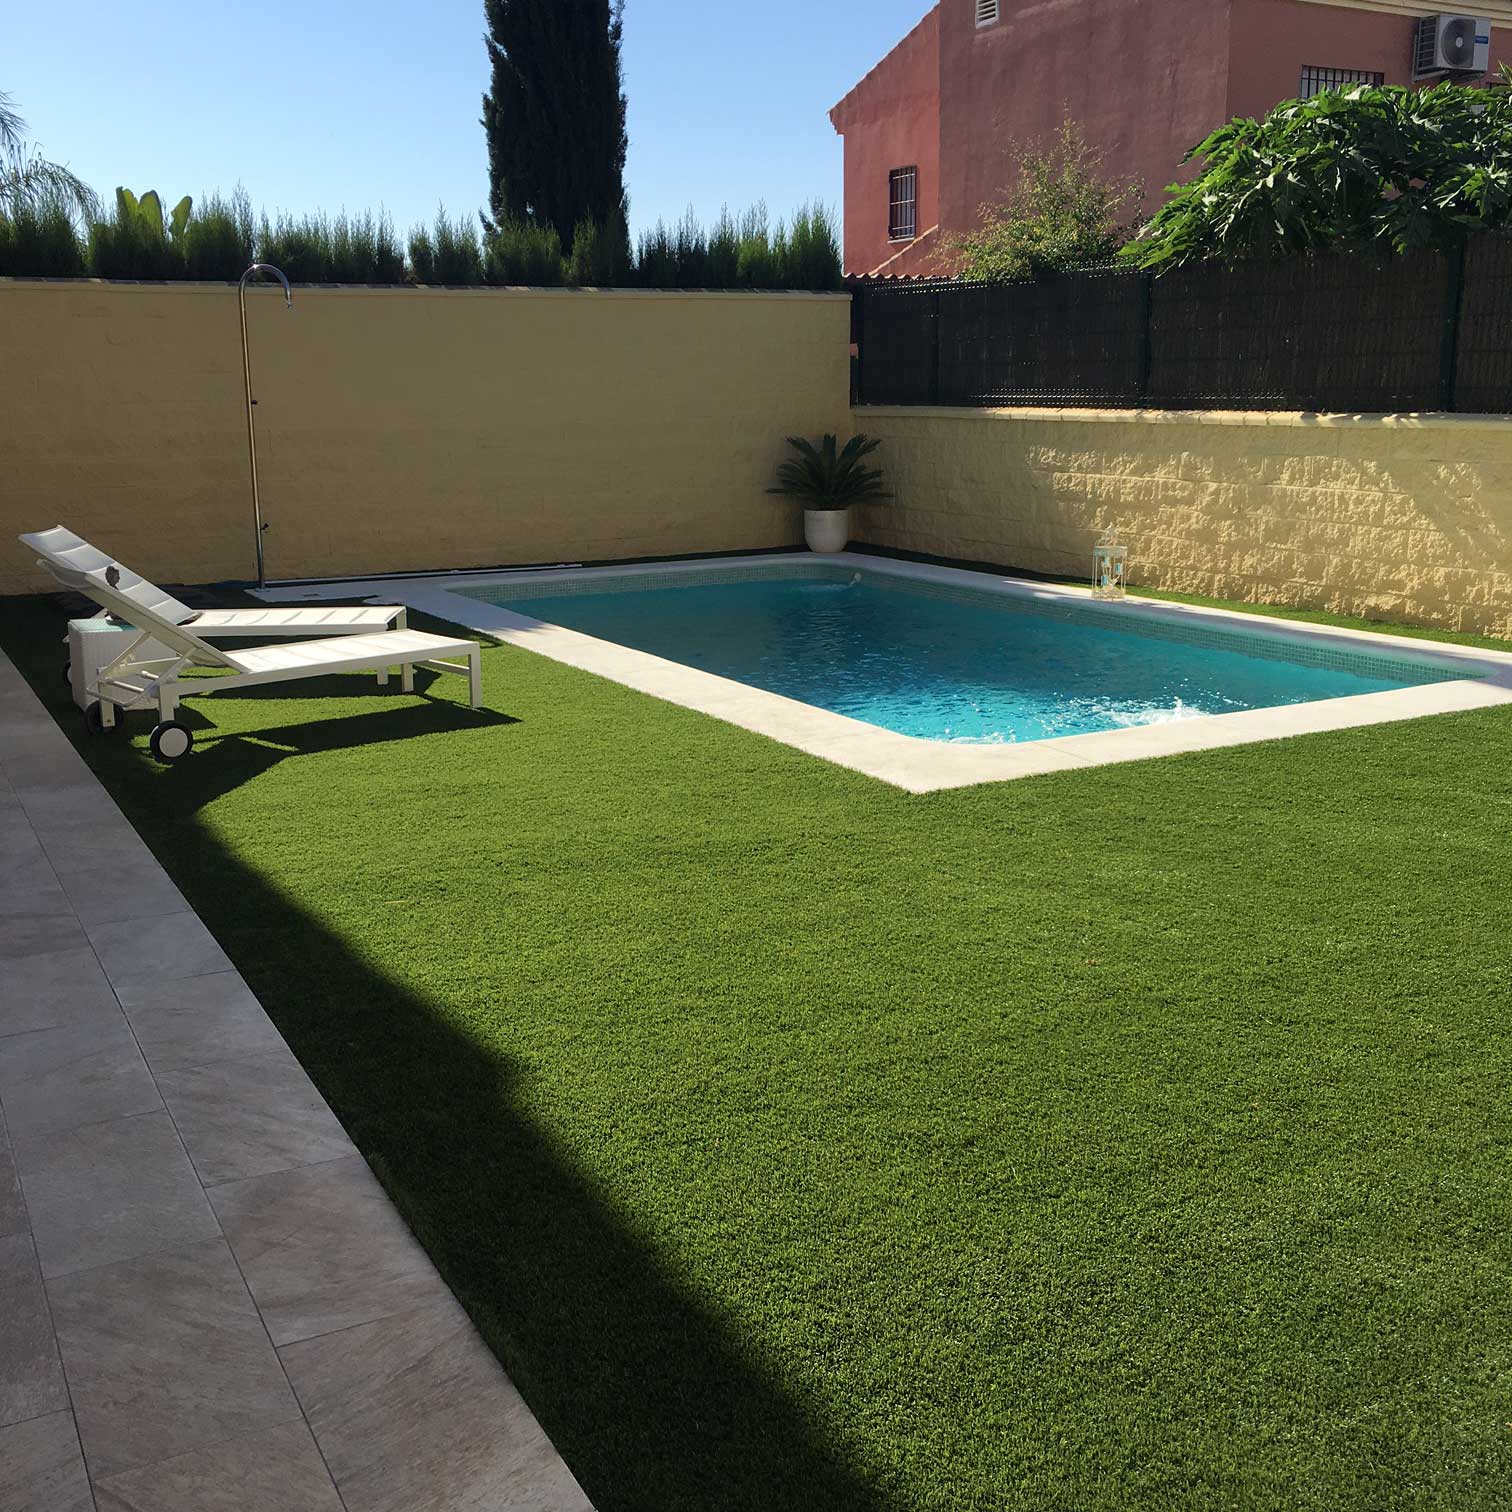 Jardin con cesped artificial cool jardn de csped - Jardin con cesped ...